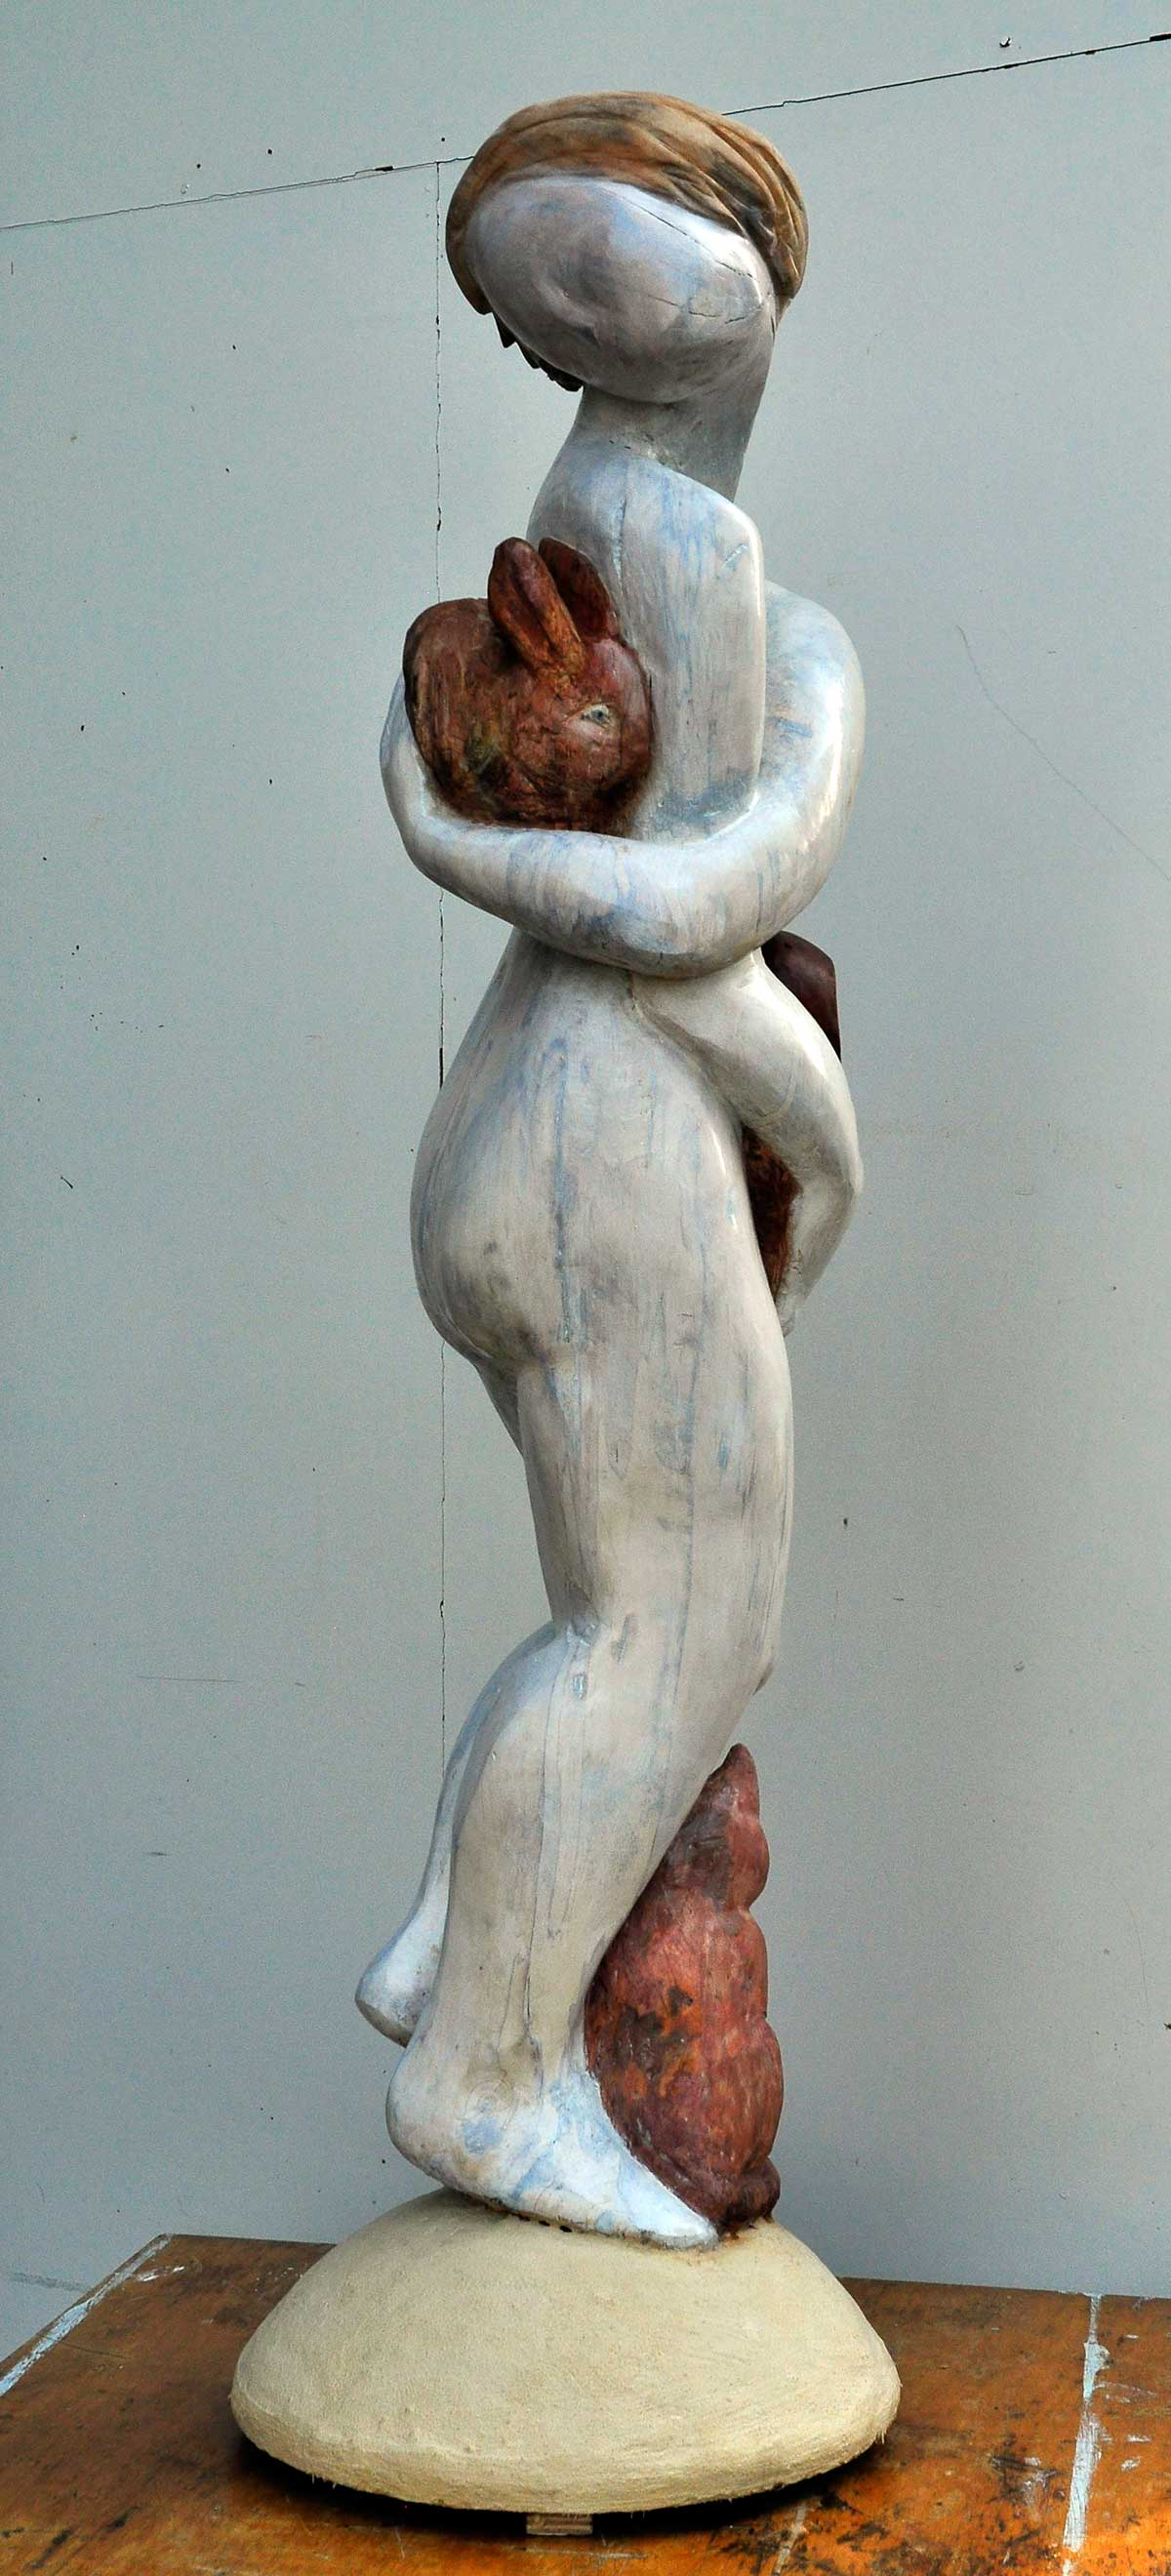 Together, carved in wood by Frans van der Ven